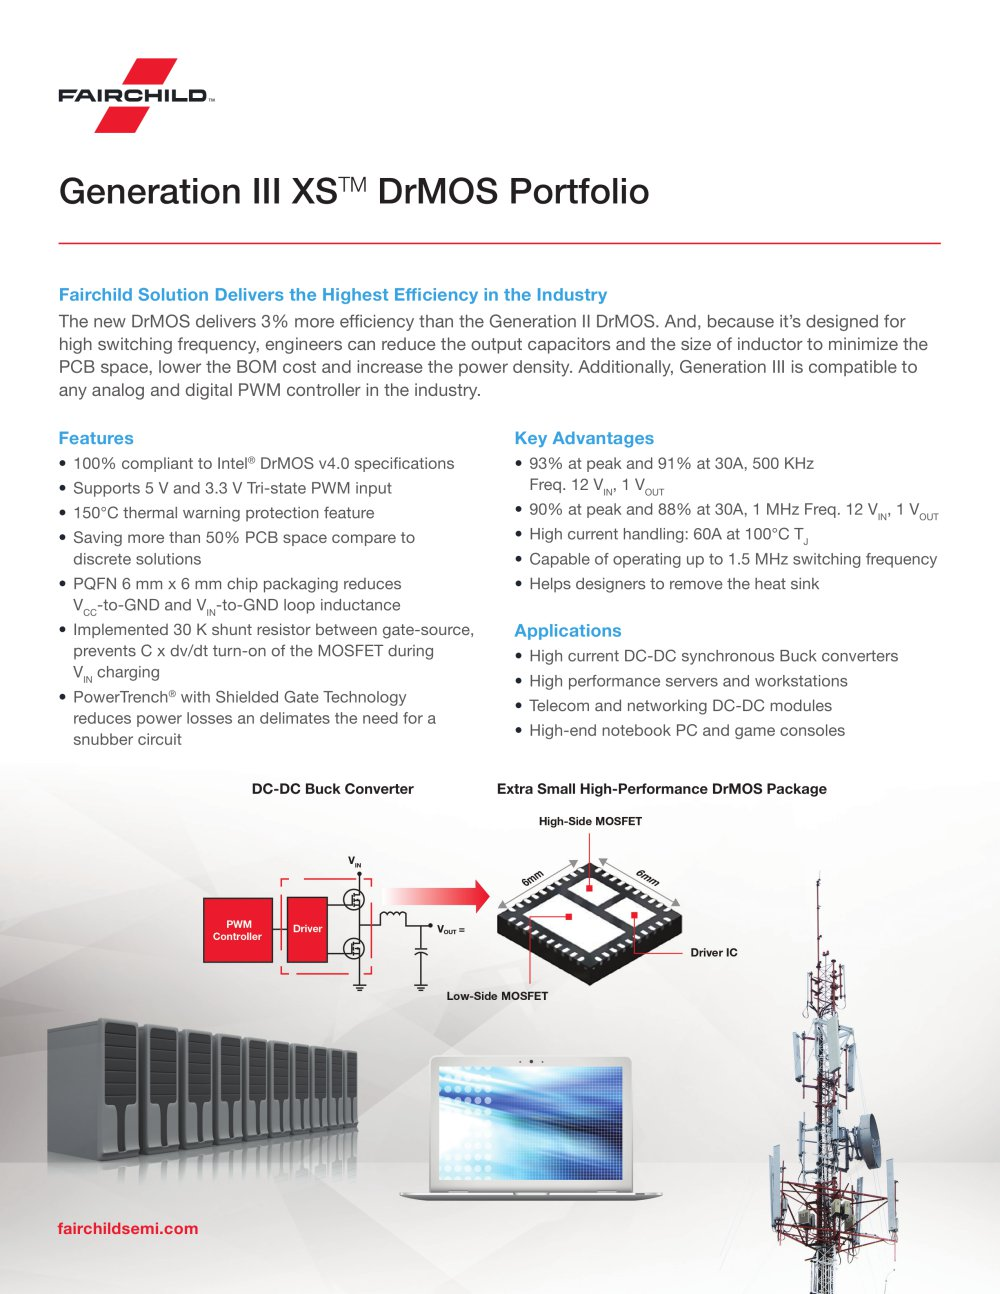 High Power Buck Converter Dc Extra Small Performance Drmos Package Generation Iii Xs Tm Portfolio 1 2 Pages